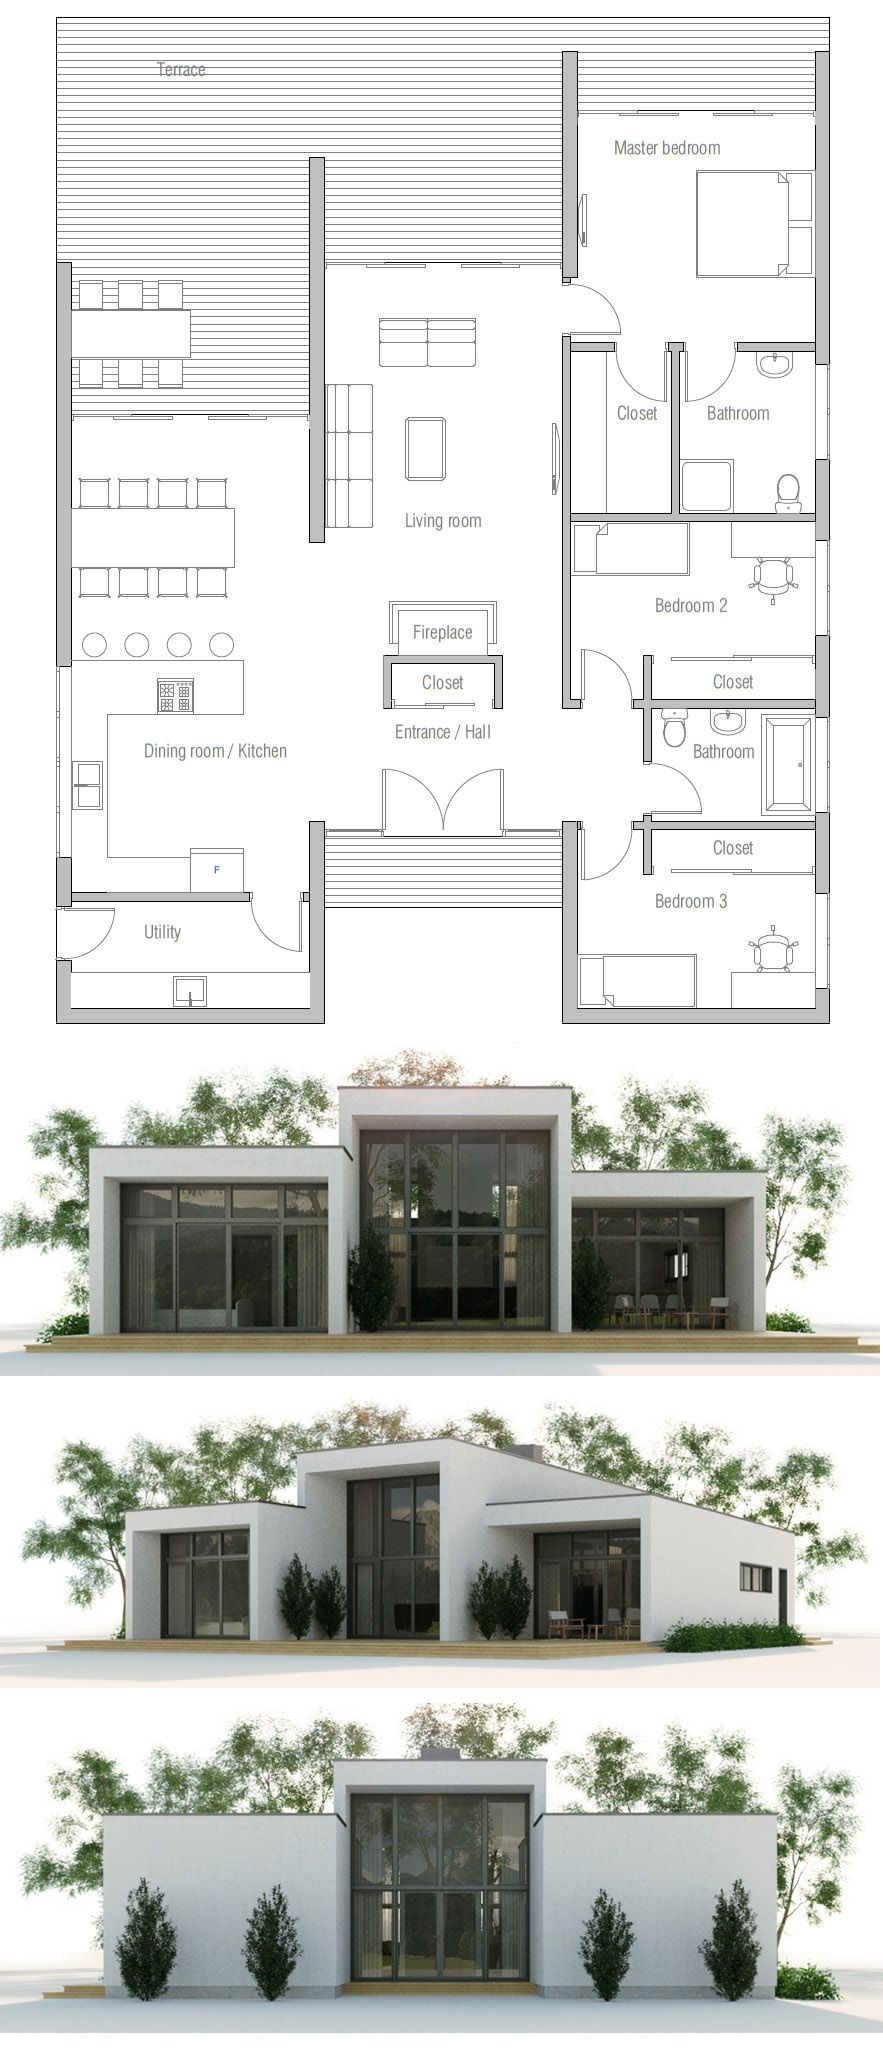 Home Plans Floor Plans Architecture Newhome Homeplans Floorplans Housedesigns Adhouseplans Architektur Haus Haus Pläne Haus Architektur